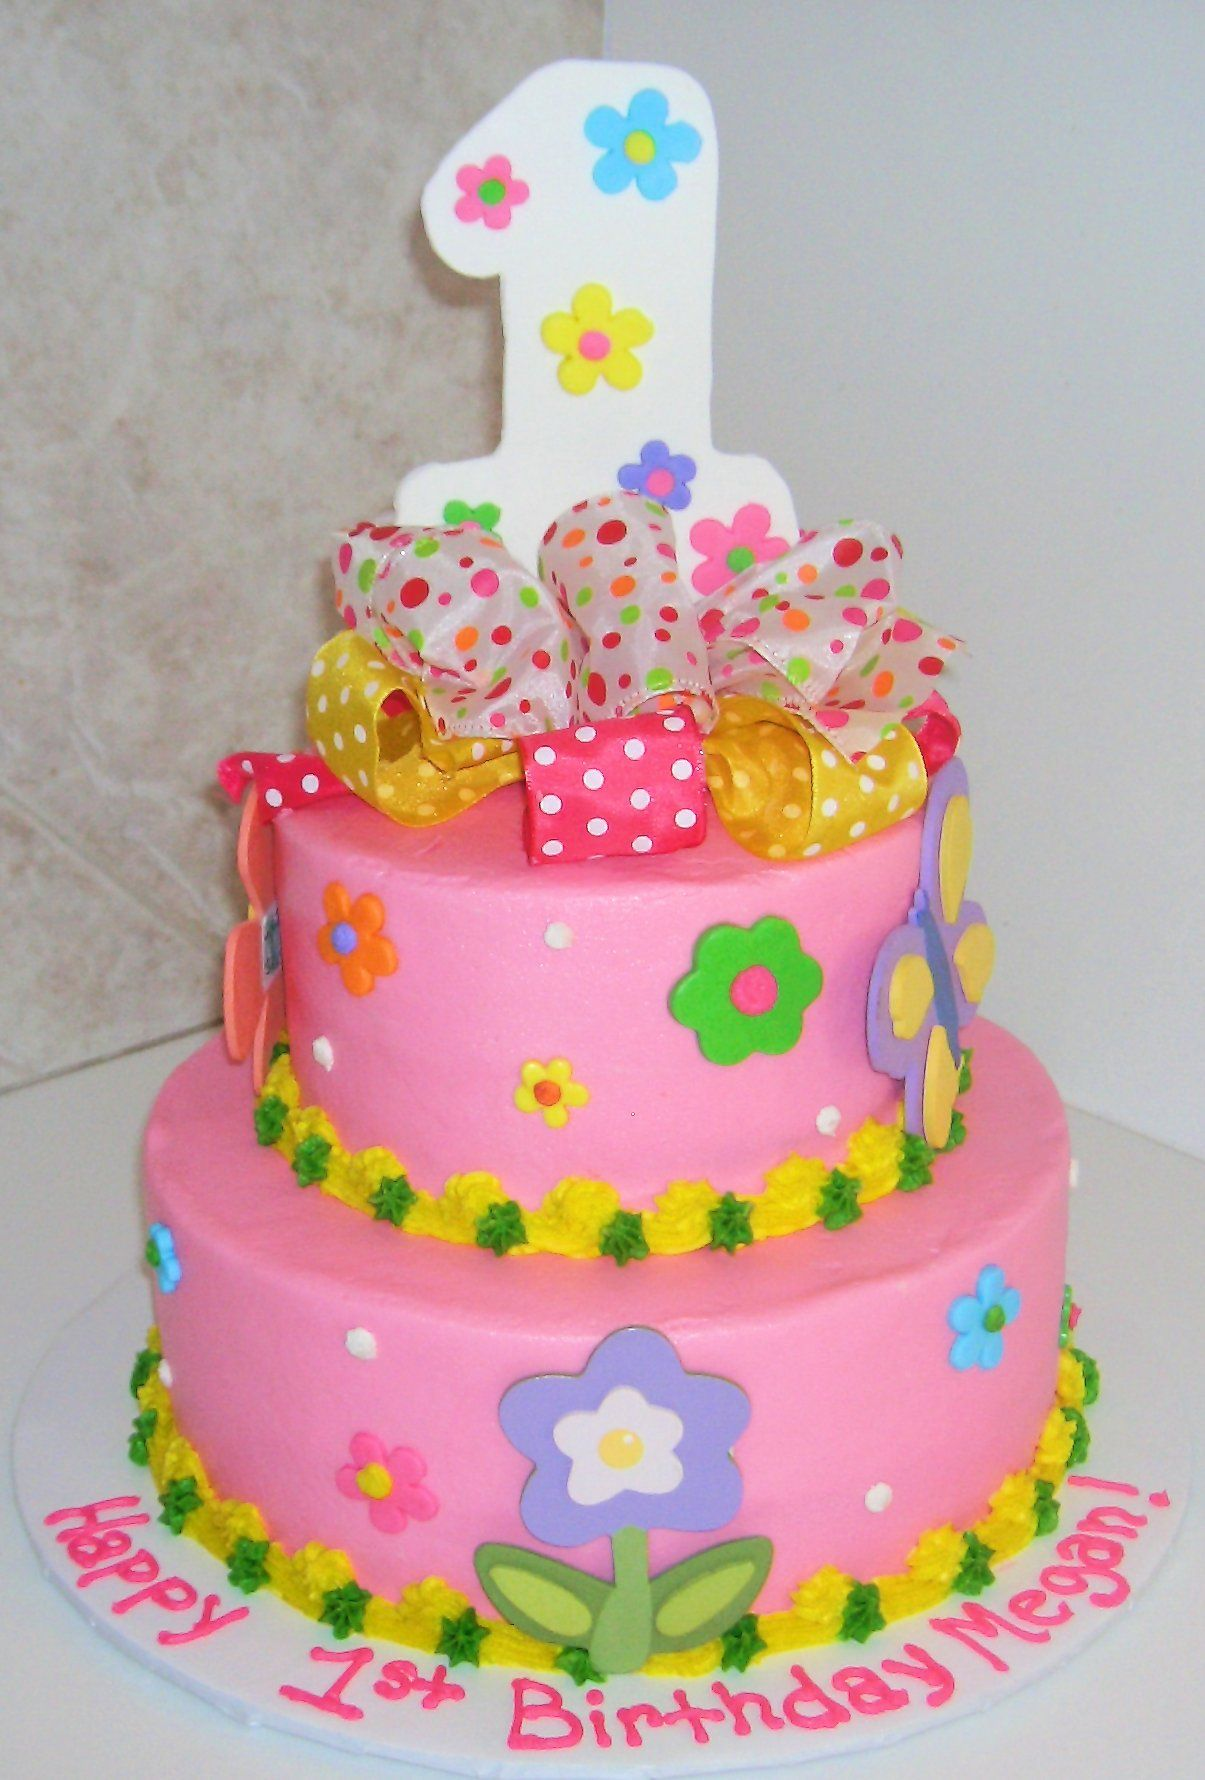 1st Birthday Flowers Description 9 6 Inch Stacked Rounds Decorated